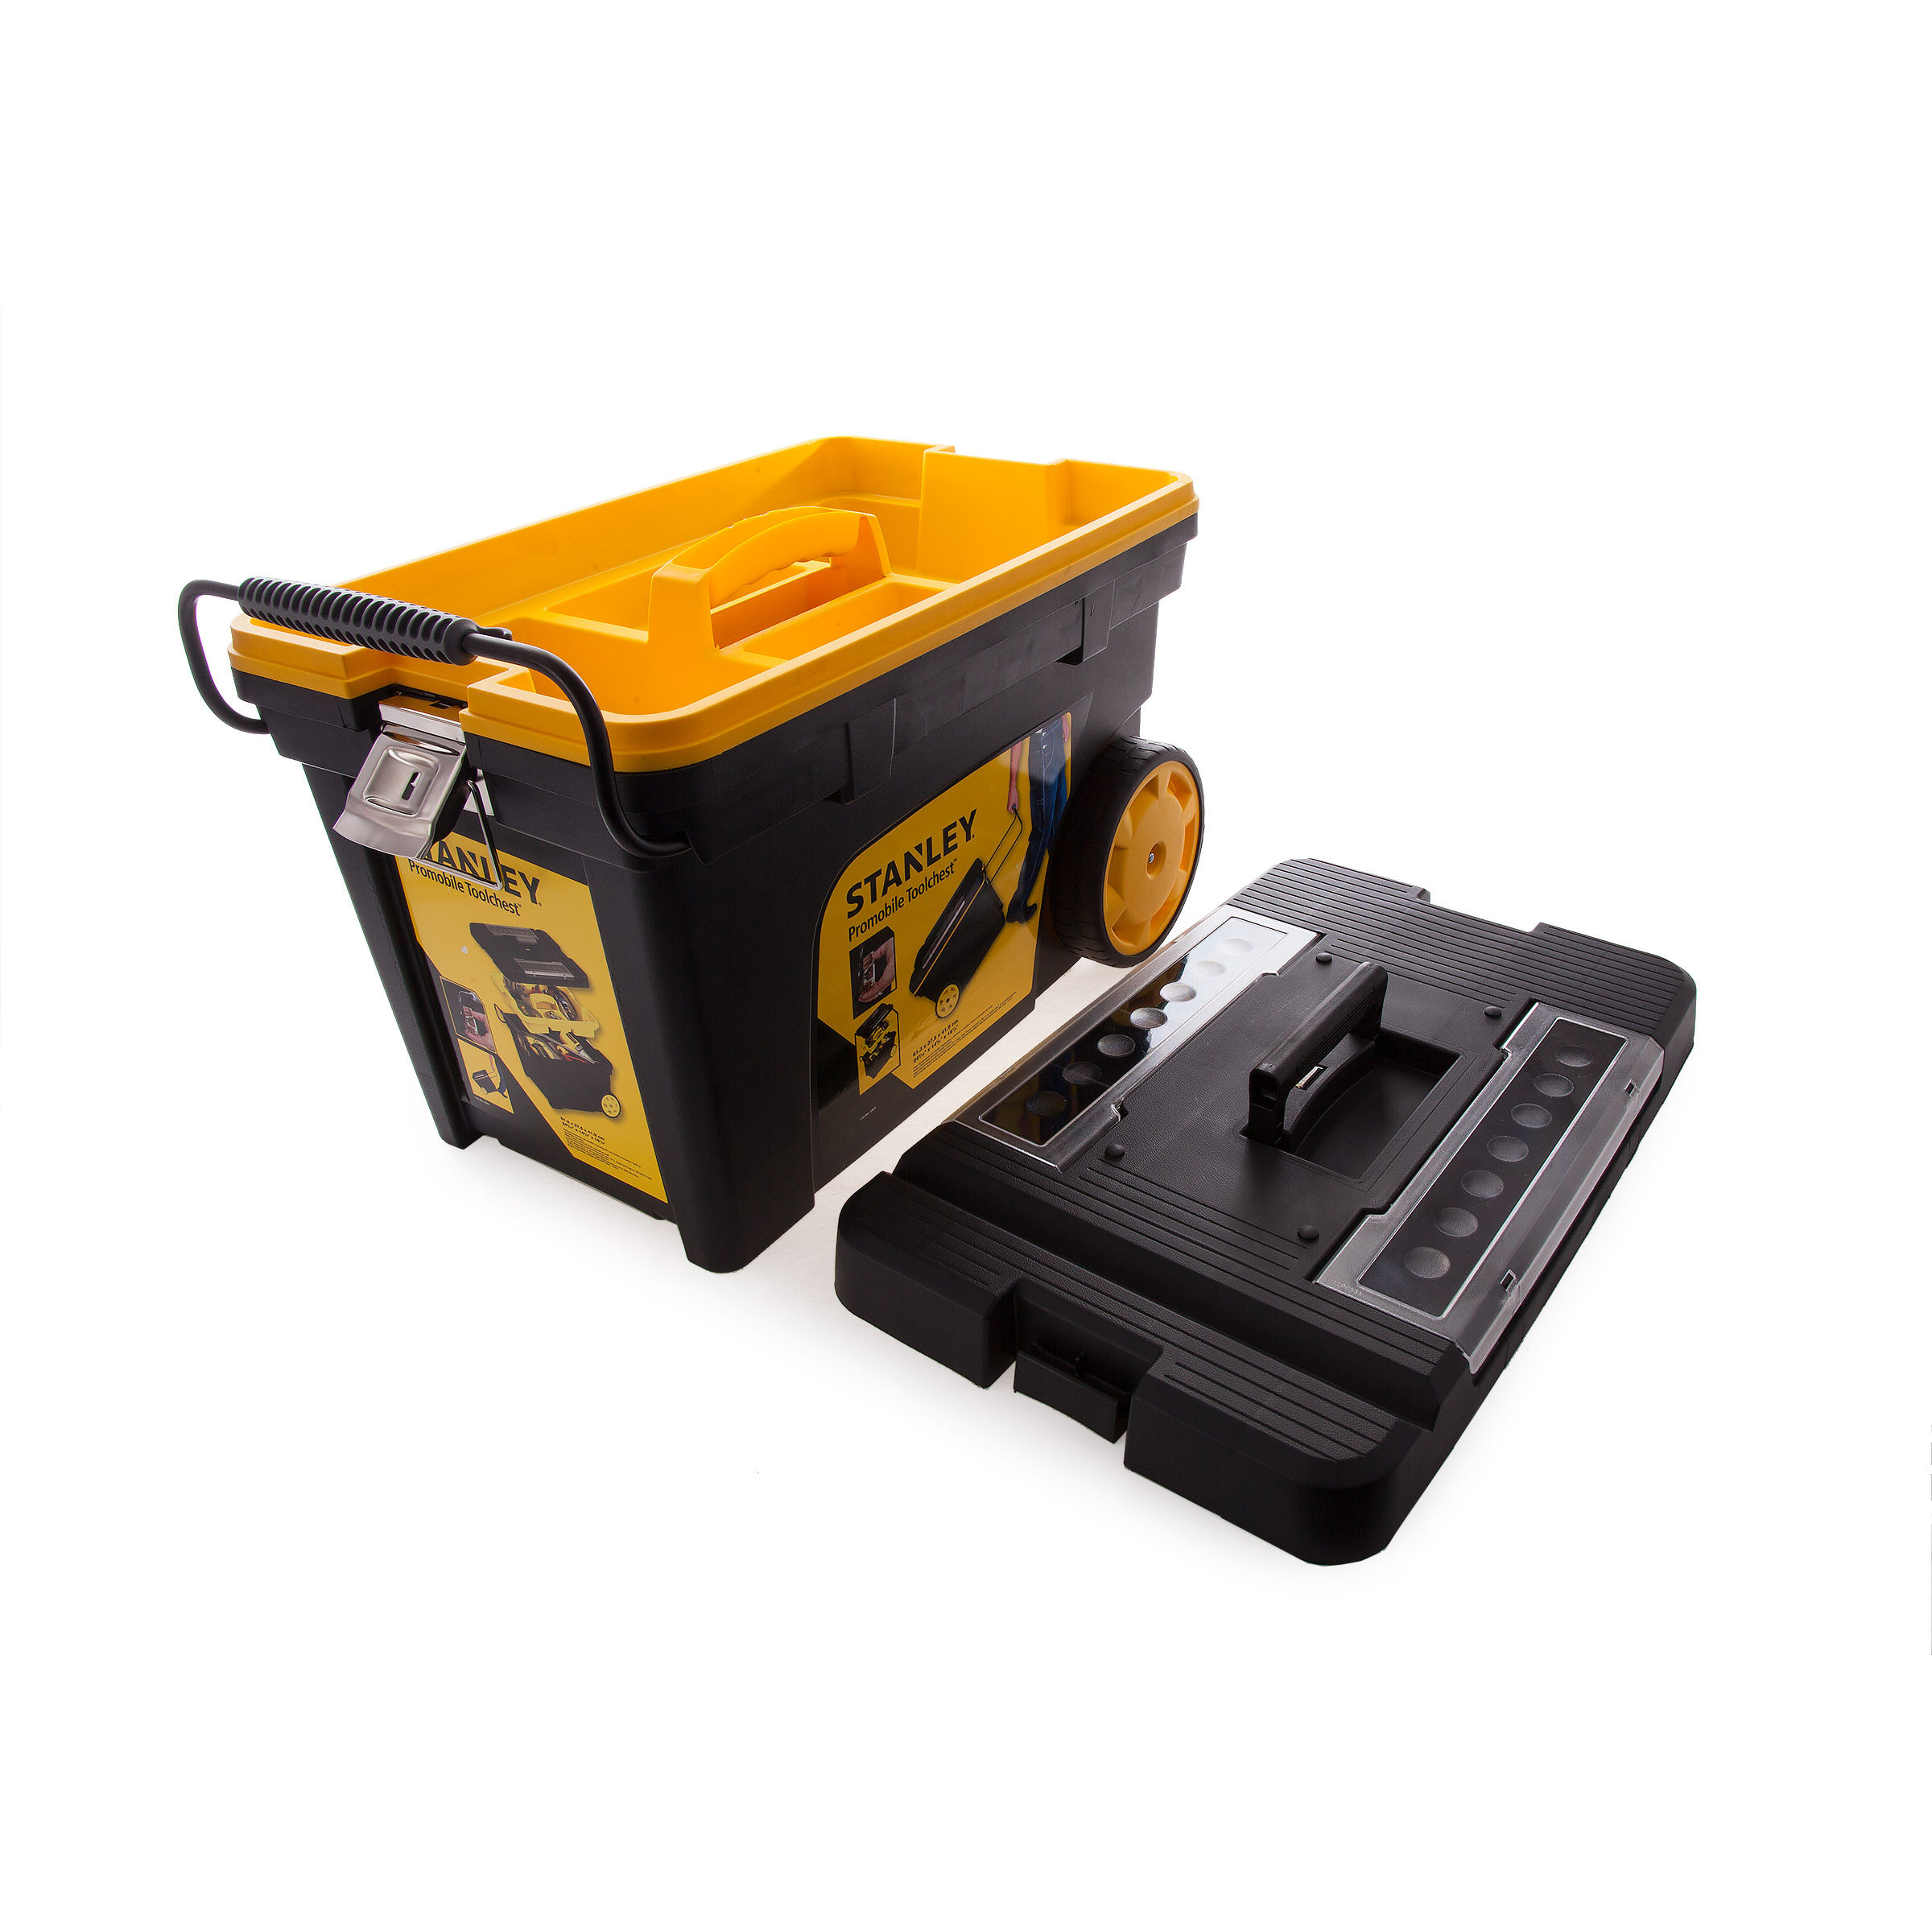 Stanley roues professionnel mobile Tool Chest Box Heavy Duty 1-92-902